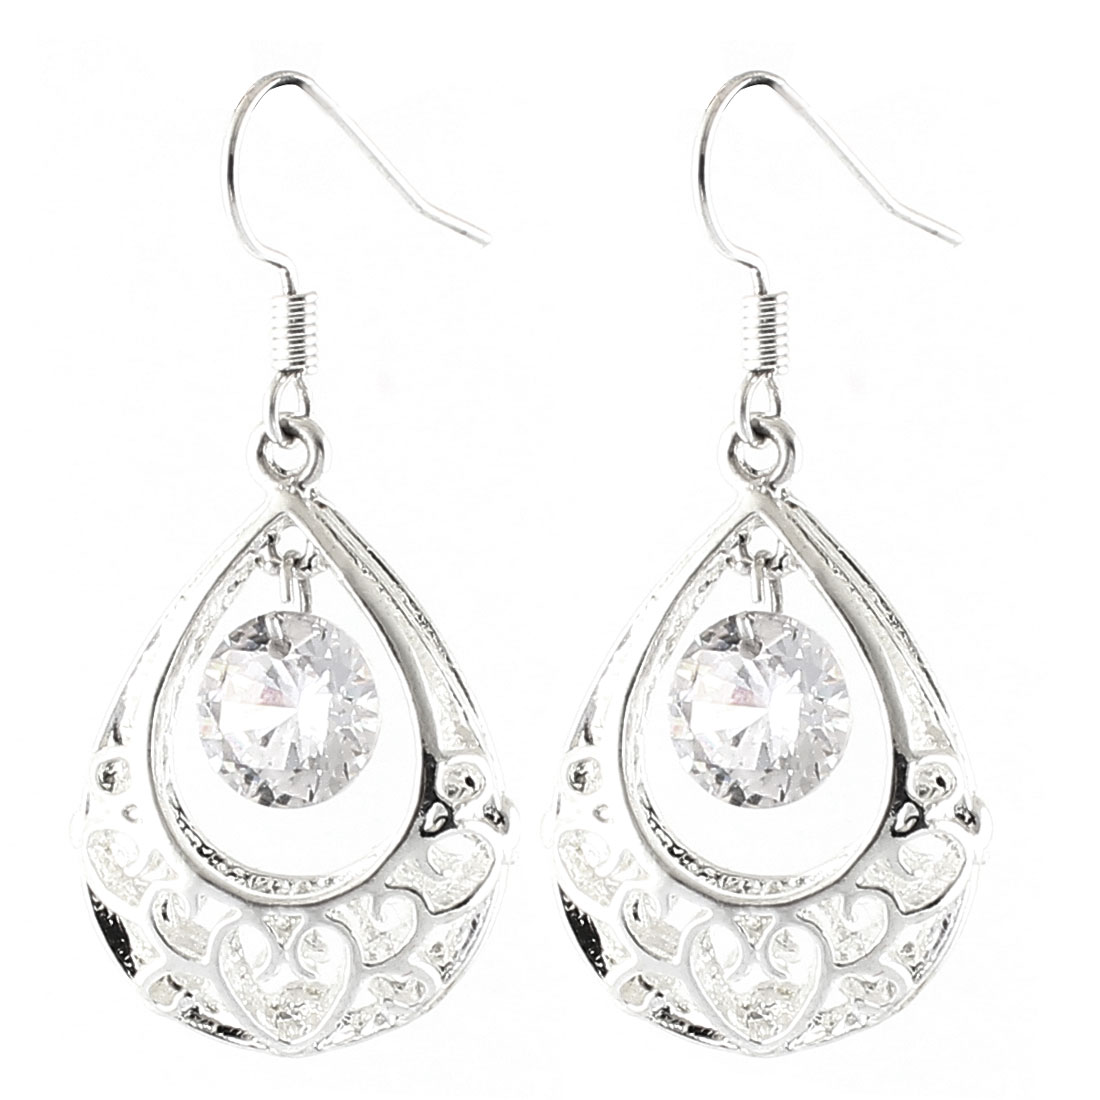 Lady Metal Drops Rhinestone Dangling Pendant Hollowed-out Hook Earrings Silver Tone Pair